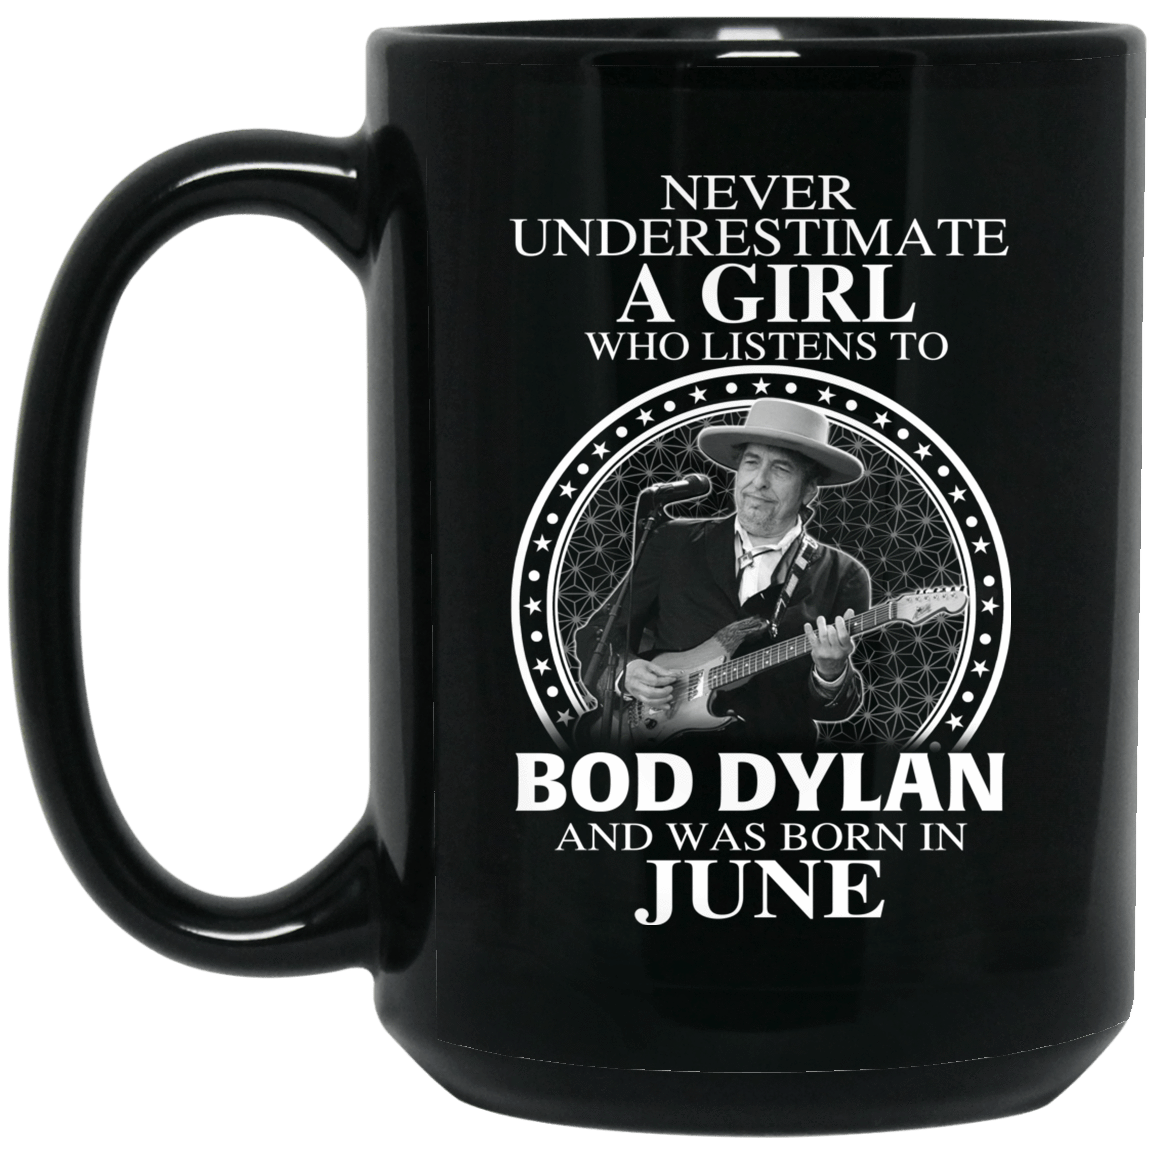 A Girl Who Listens To Bob Dylan And Was Born In June Mug 1066-10182-76154835-49311 - Tee Ript